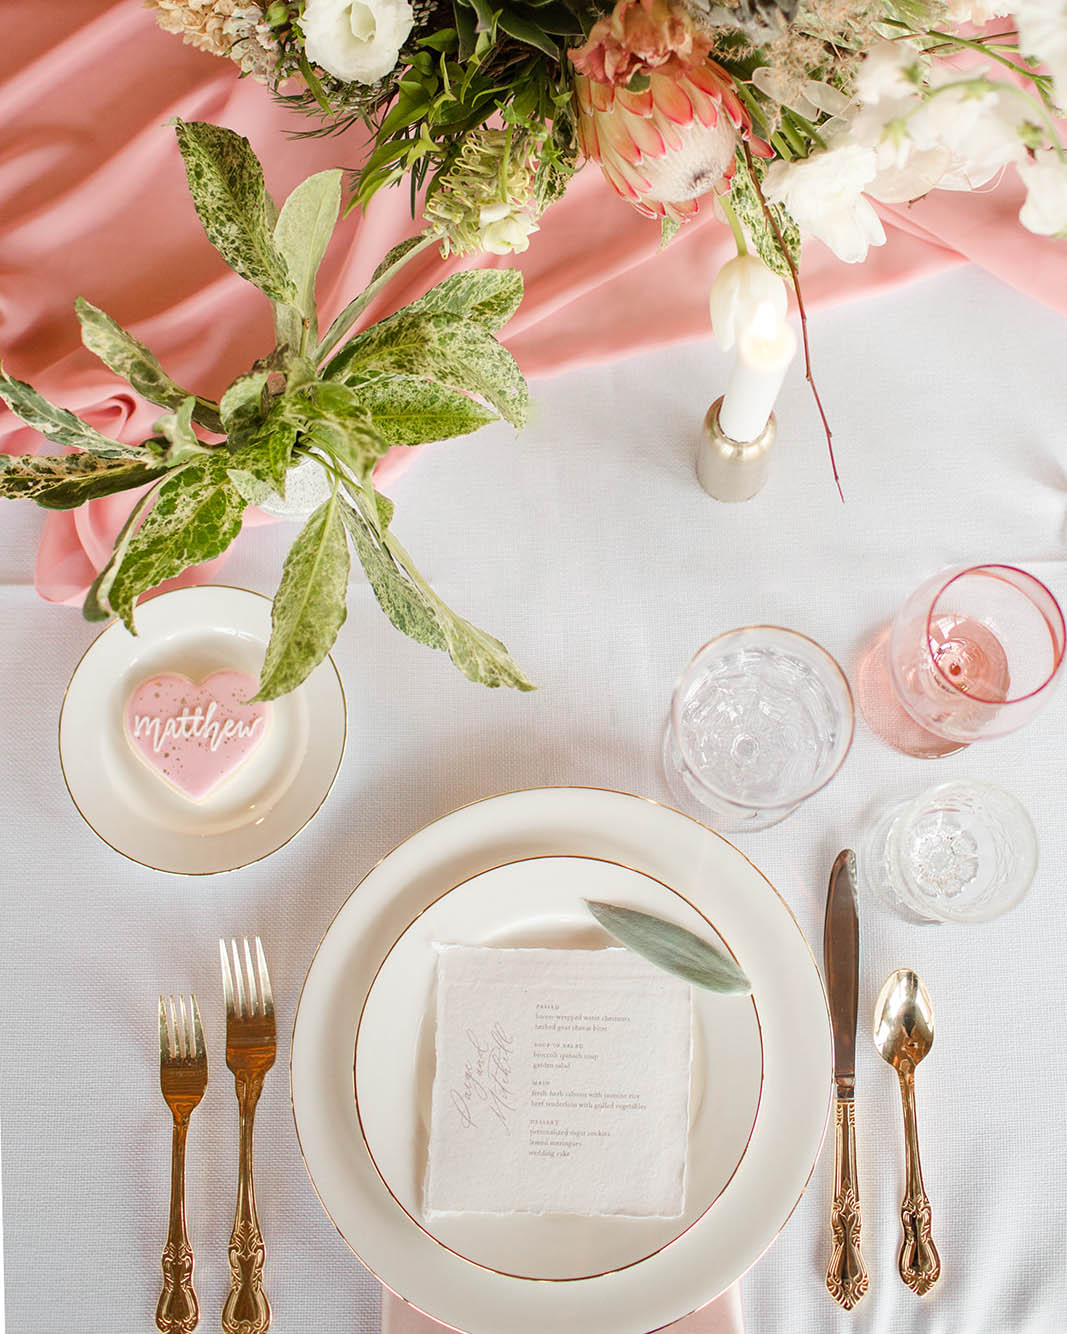 Romantic fine art wedding stationery, inspired by the poise and movement of ballet. Calligraphy and Stationery by Caitlin O'Bryant Design. Photo: Kelby Maria Photography. Planning: Peachy Keen Coordination. Rentals: Bridgewood Event Co. Cookies: Love Hope Cookies. Florals: Revel Petals.